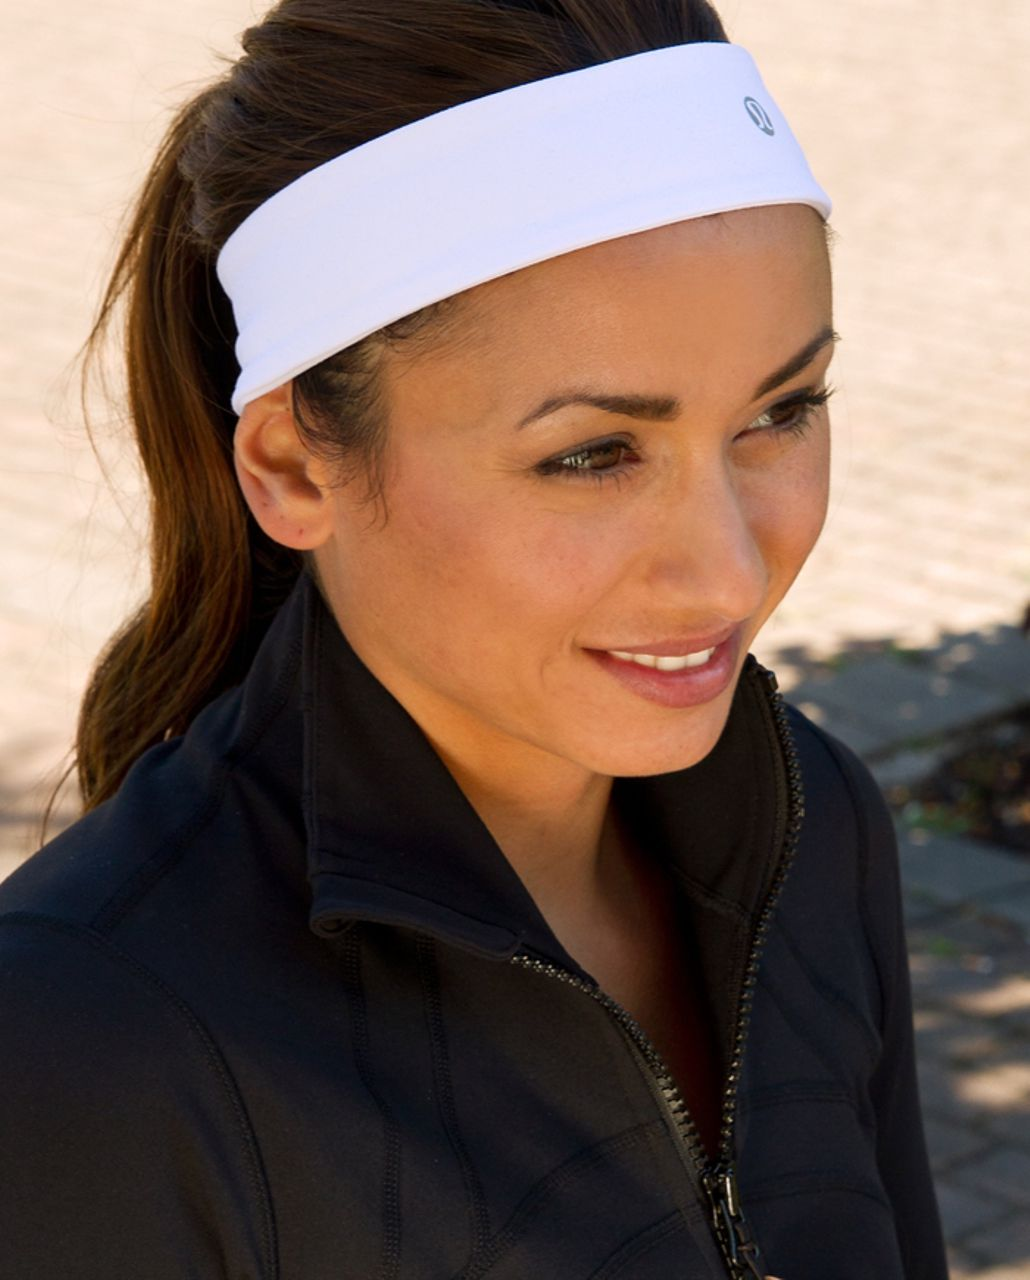 Lululemon Lucky Luon Headband - White